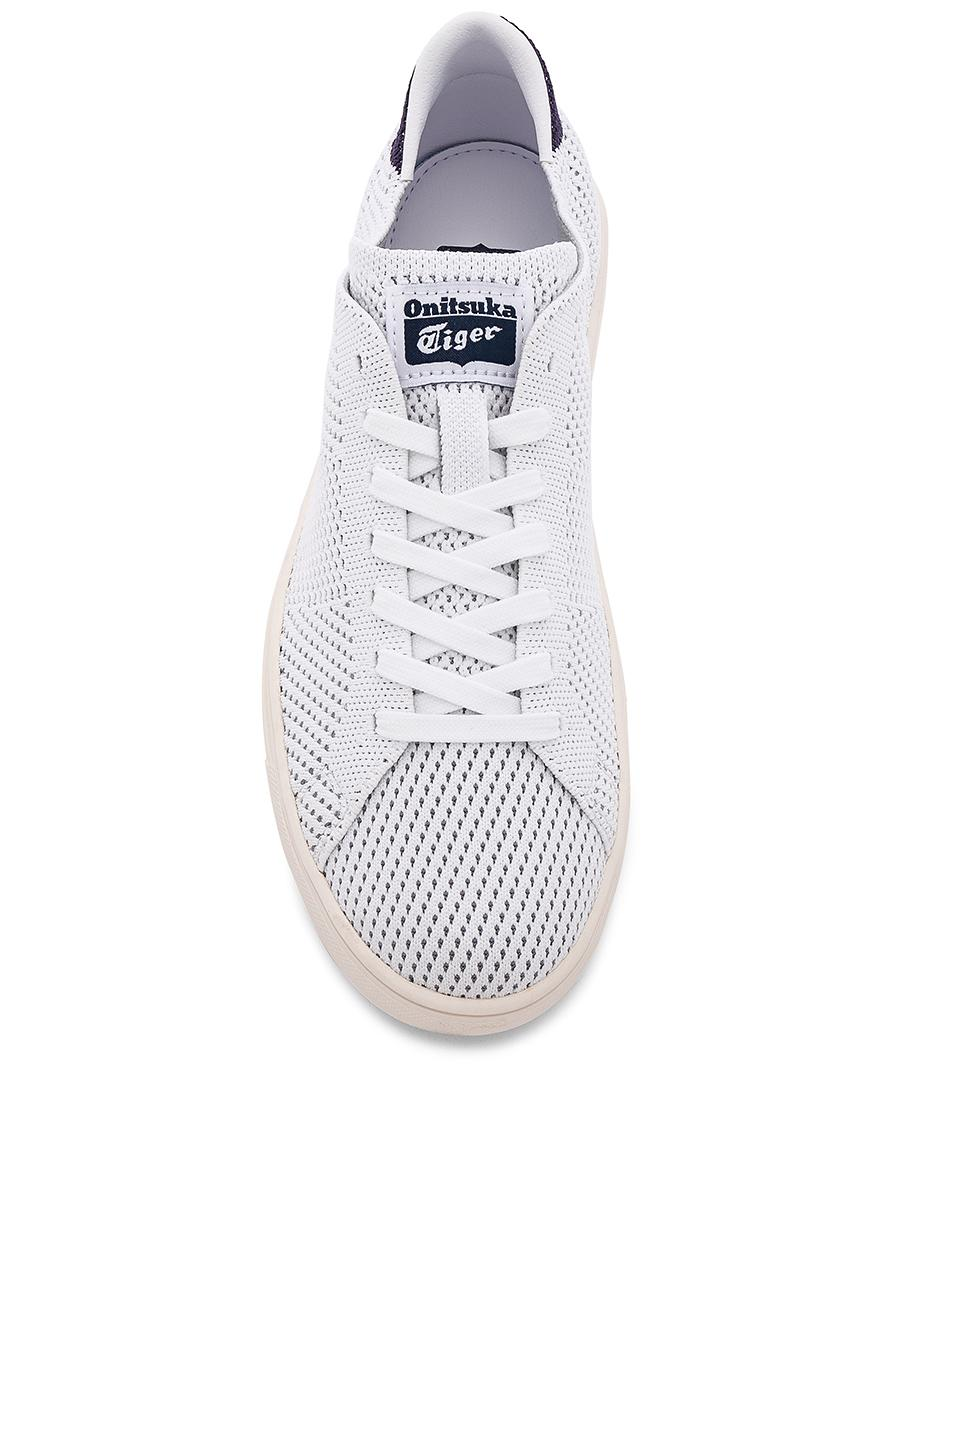 cheap for discount 56f96 68eec Onitsuka Tiger White Lawnship 2.0 Knit for men